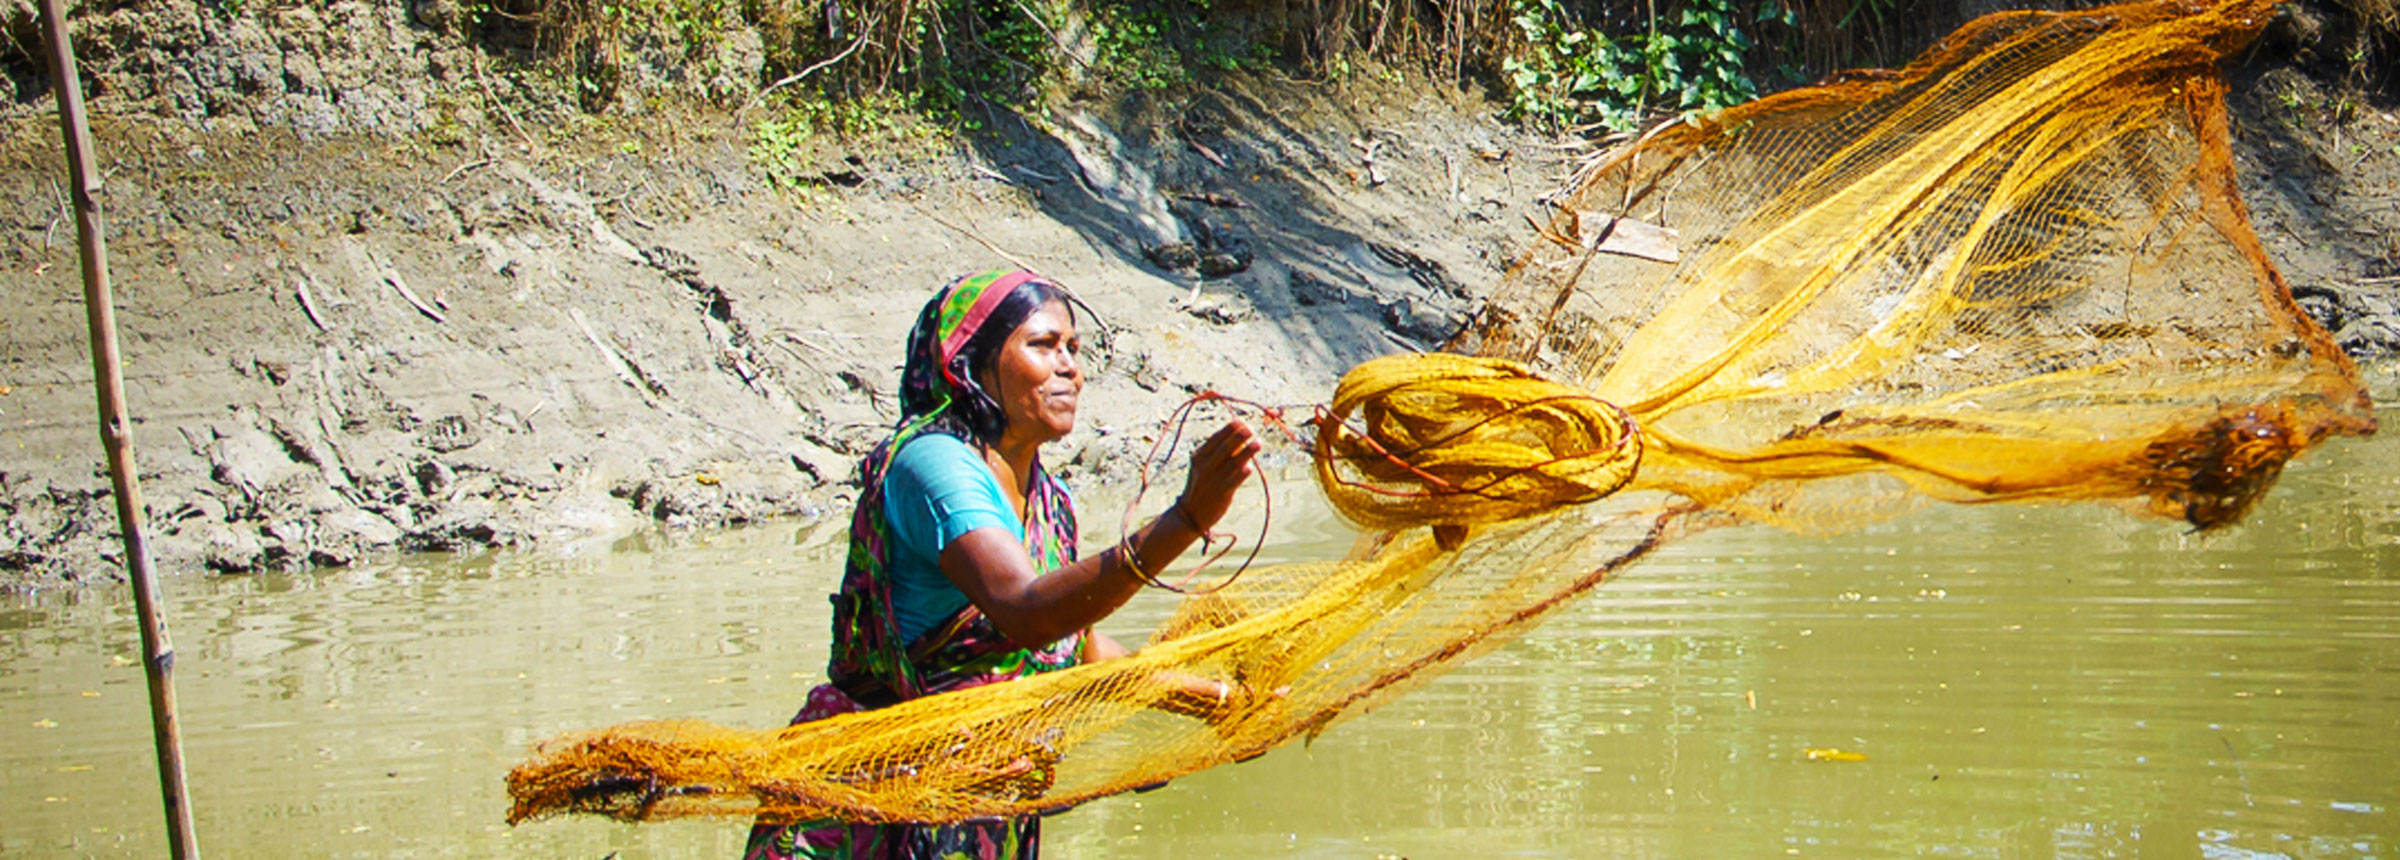 Bangladeshi woman casting fishing net